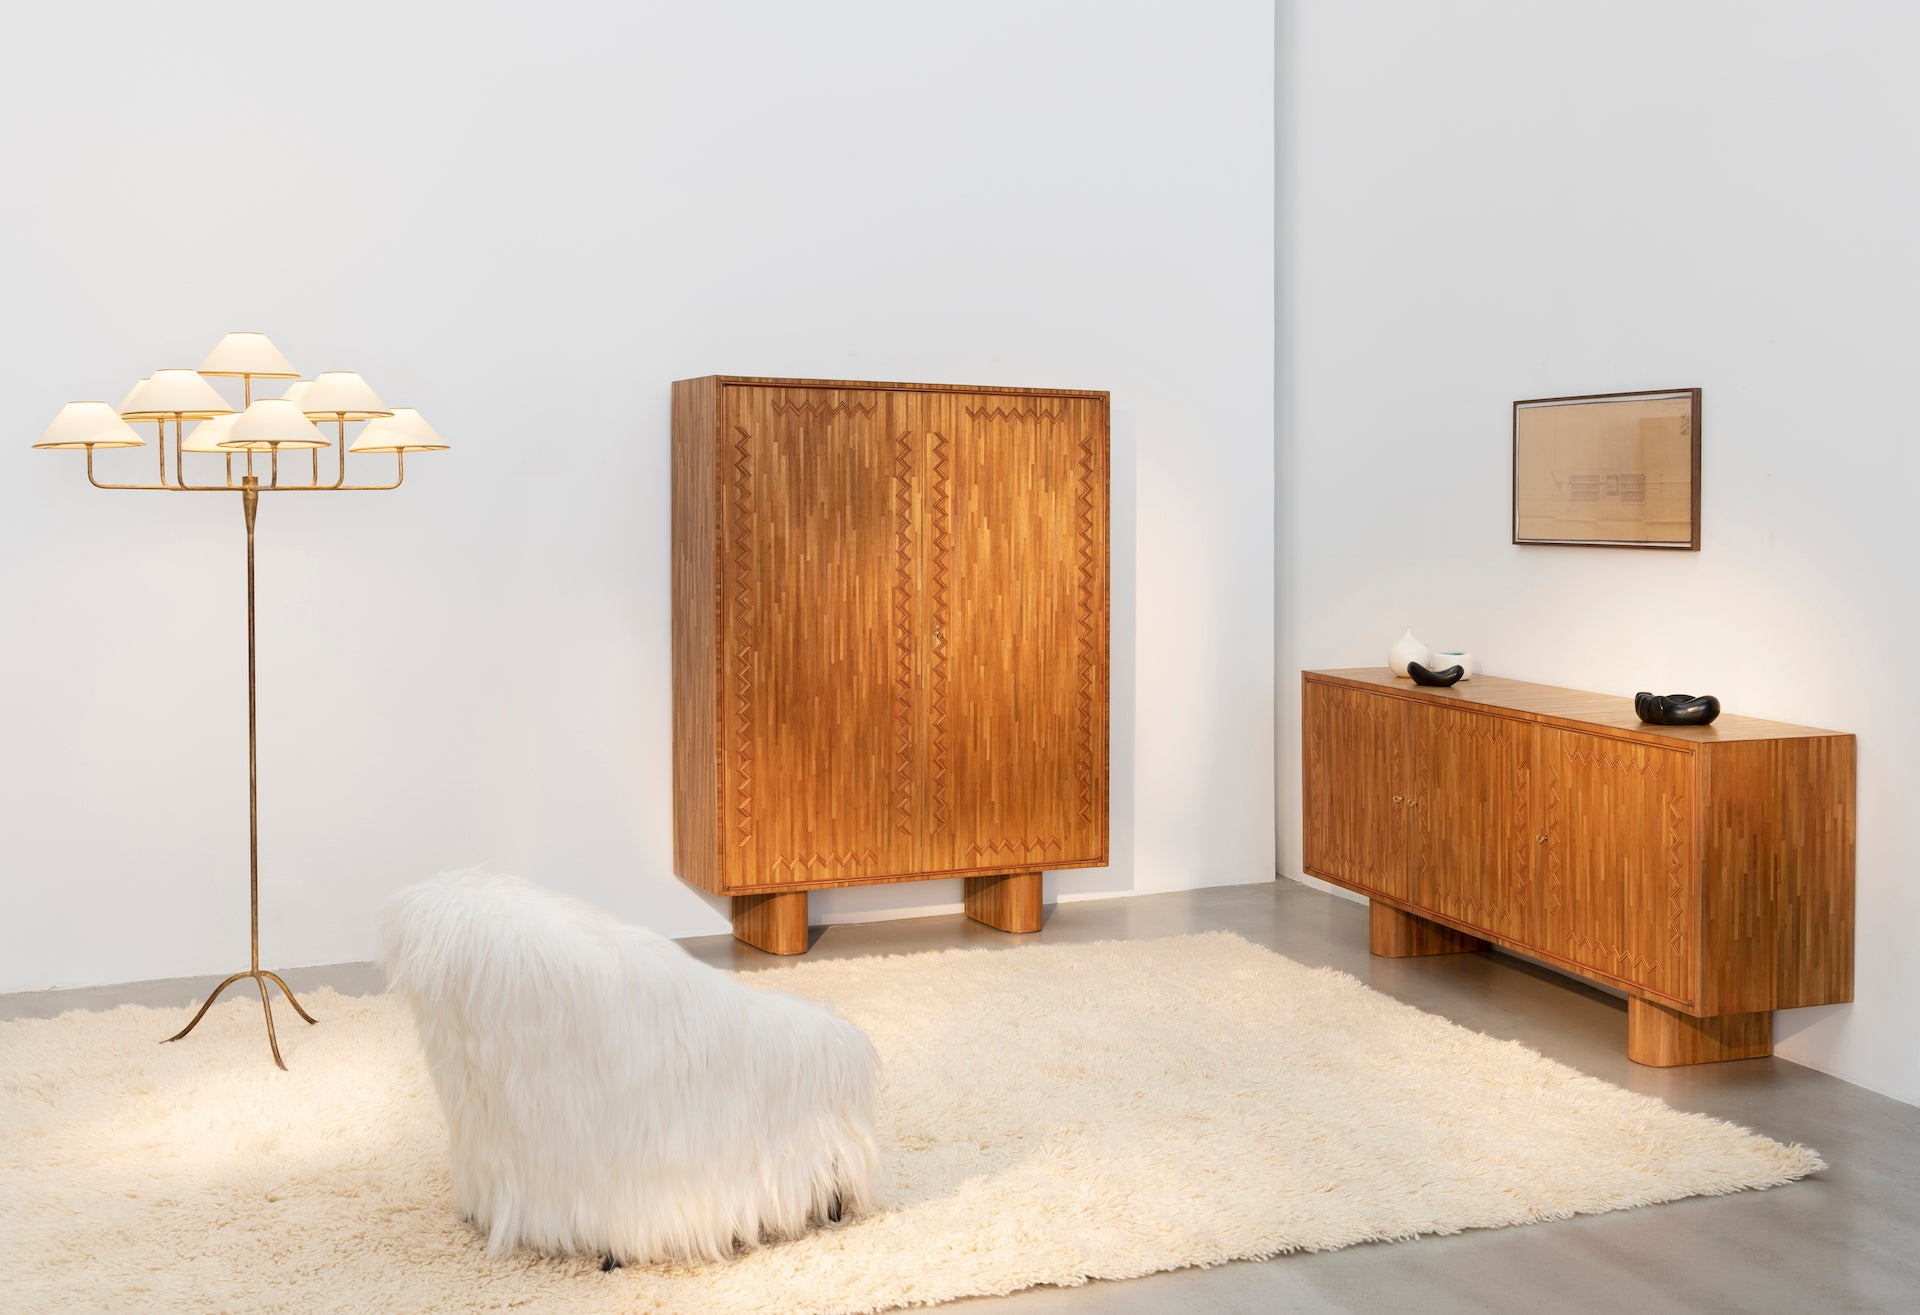 Rare Marquetry Collection by Jean Royère, c. 1951. Photo © Galerie Patrick Seguin